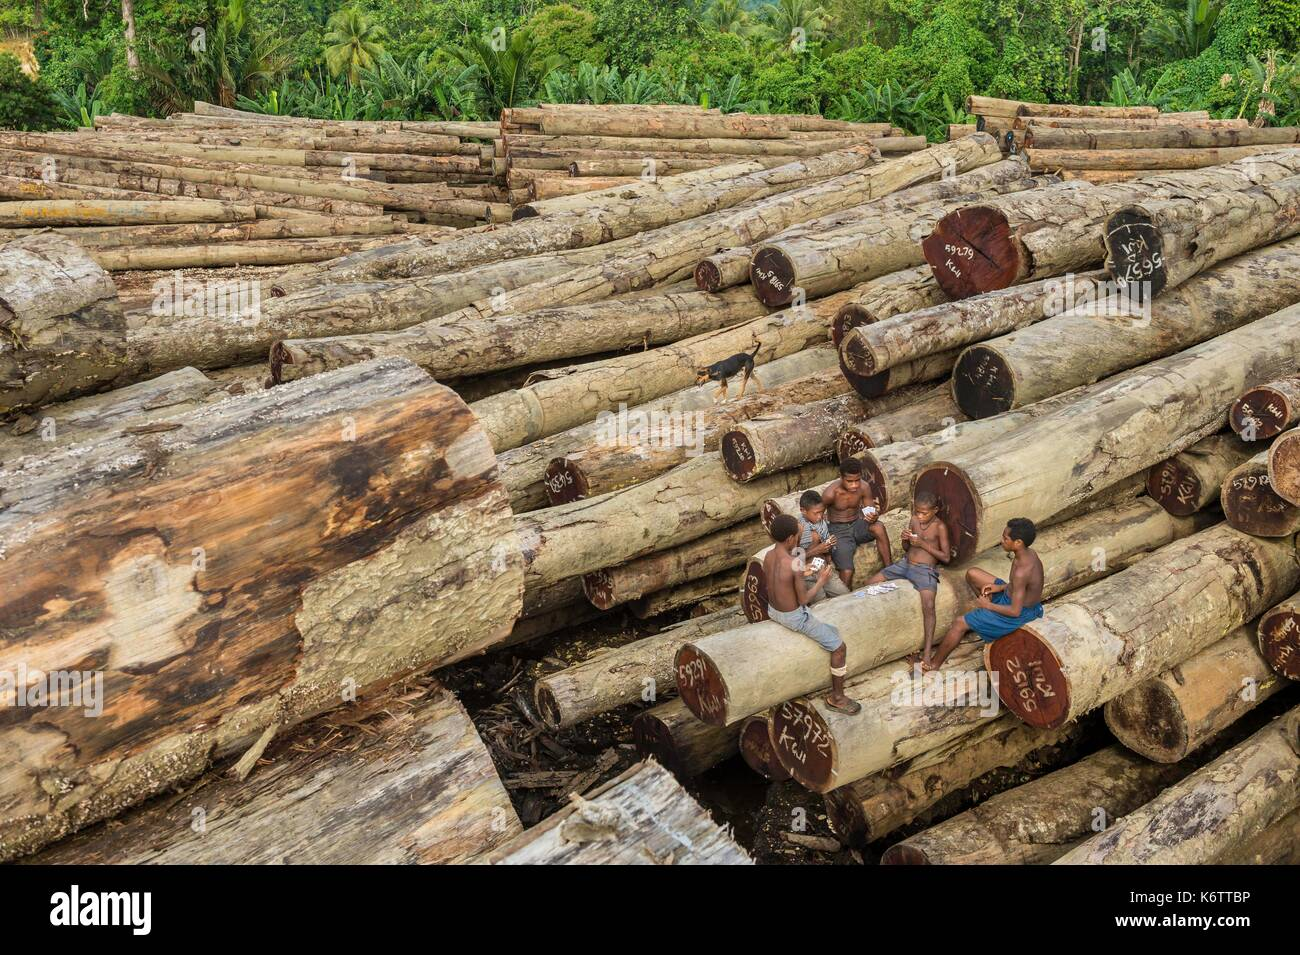 Papua New Guinea, Vanimo province, kids playing in the middle of timbers (Intsia bijuga) ready to be exported - Stock Image